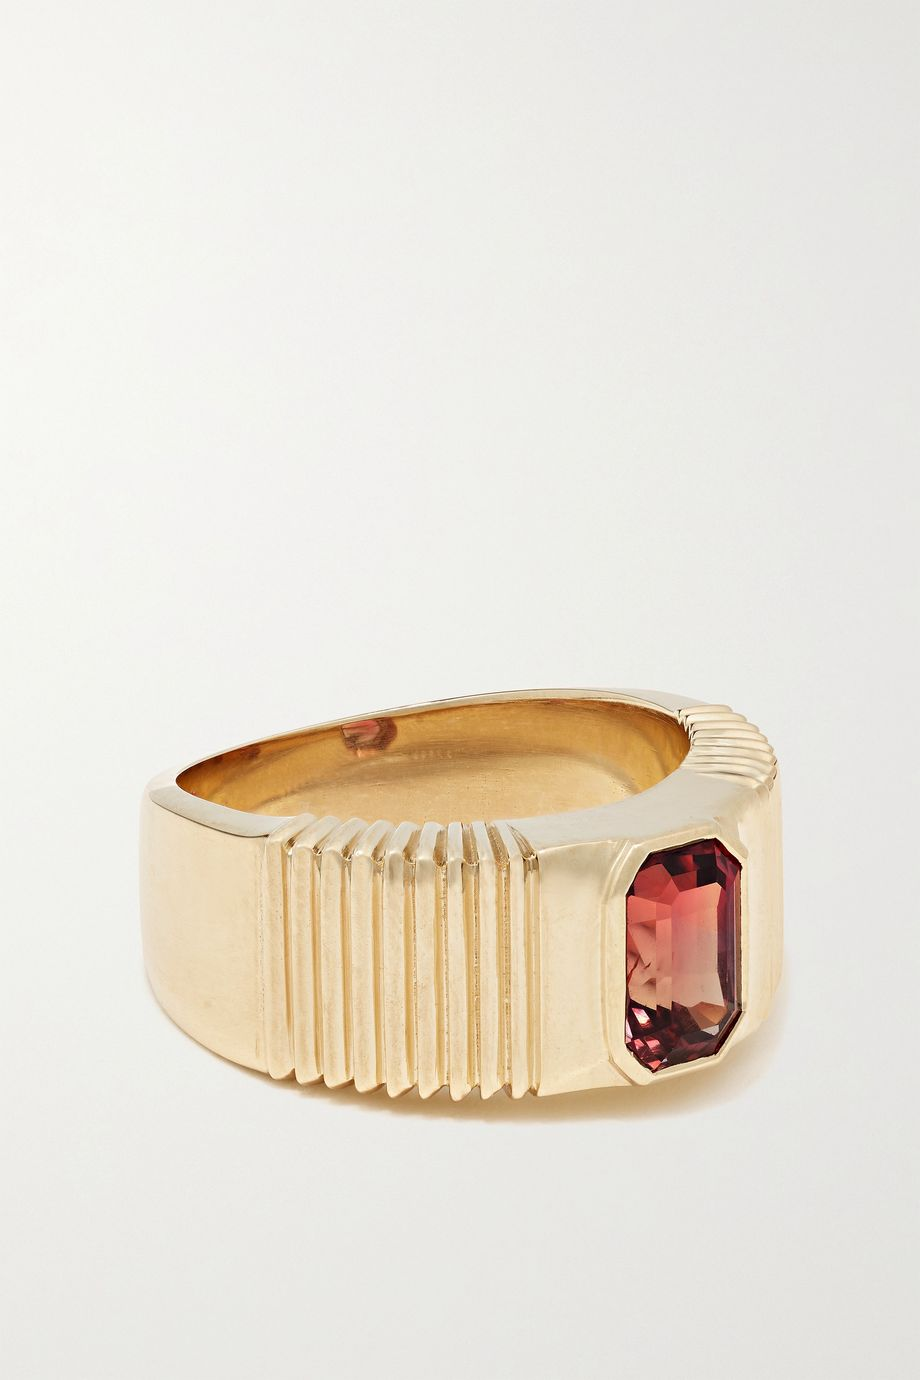 Retrouvaí Pleated Solitaire 14-karat gold garnet ring